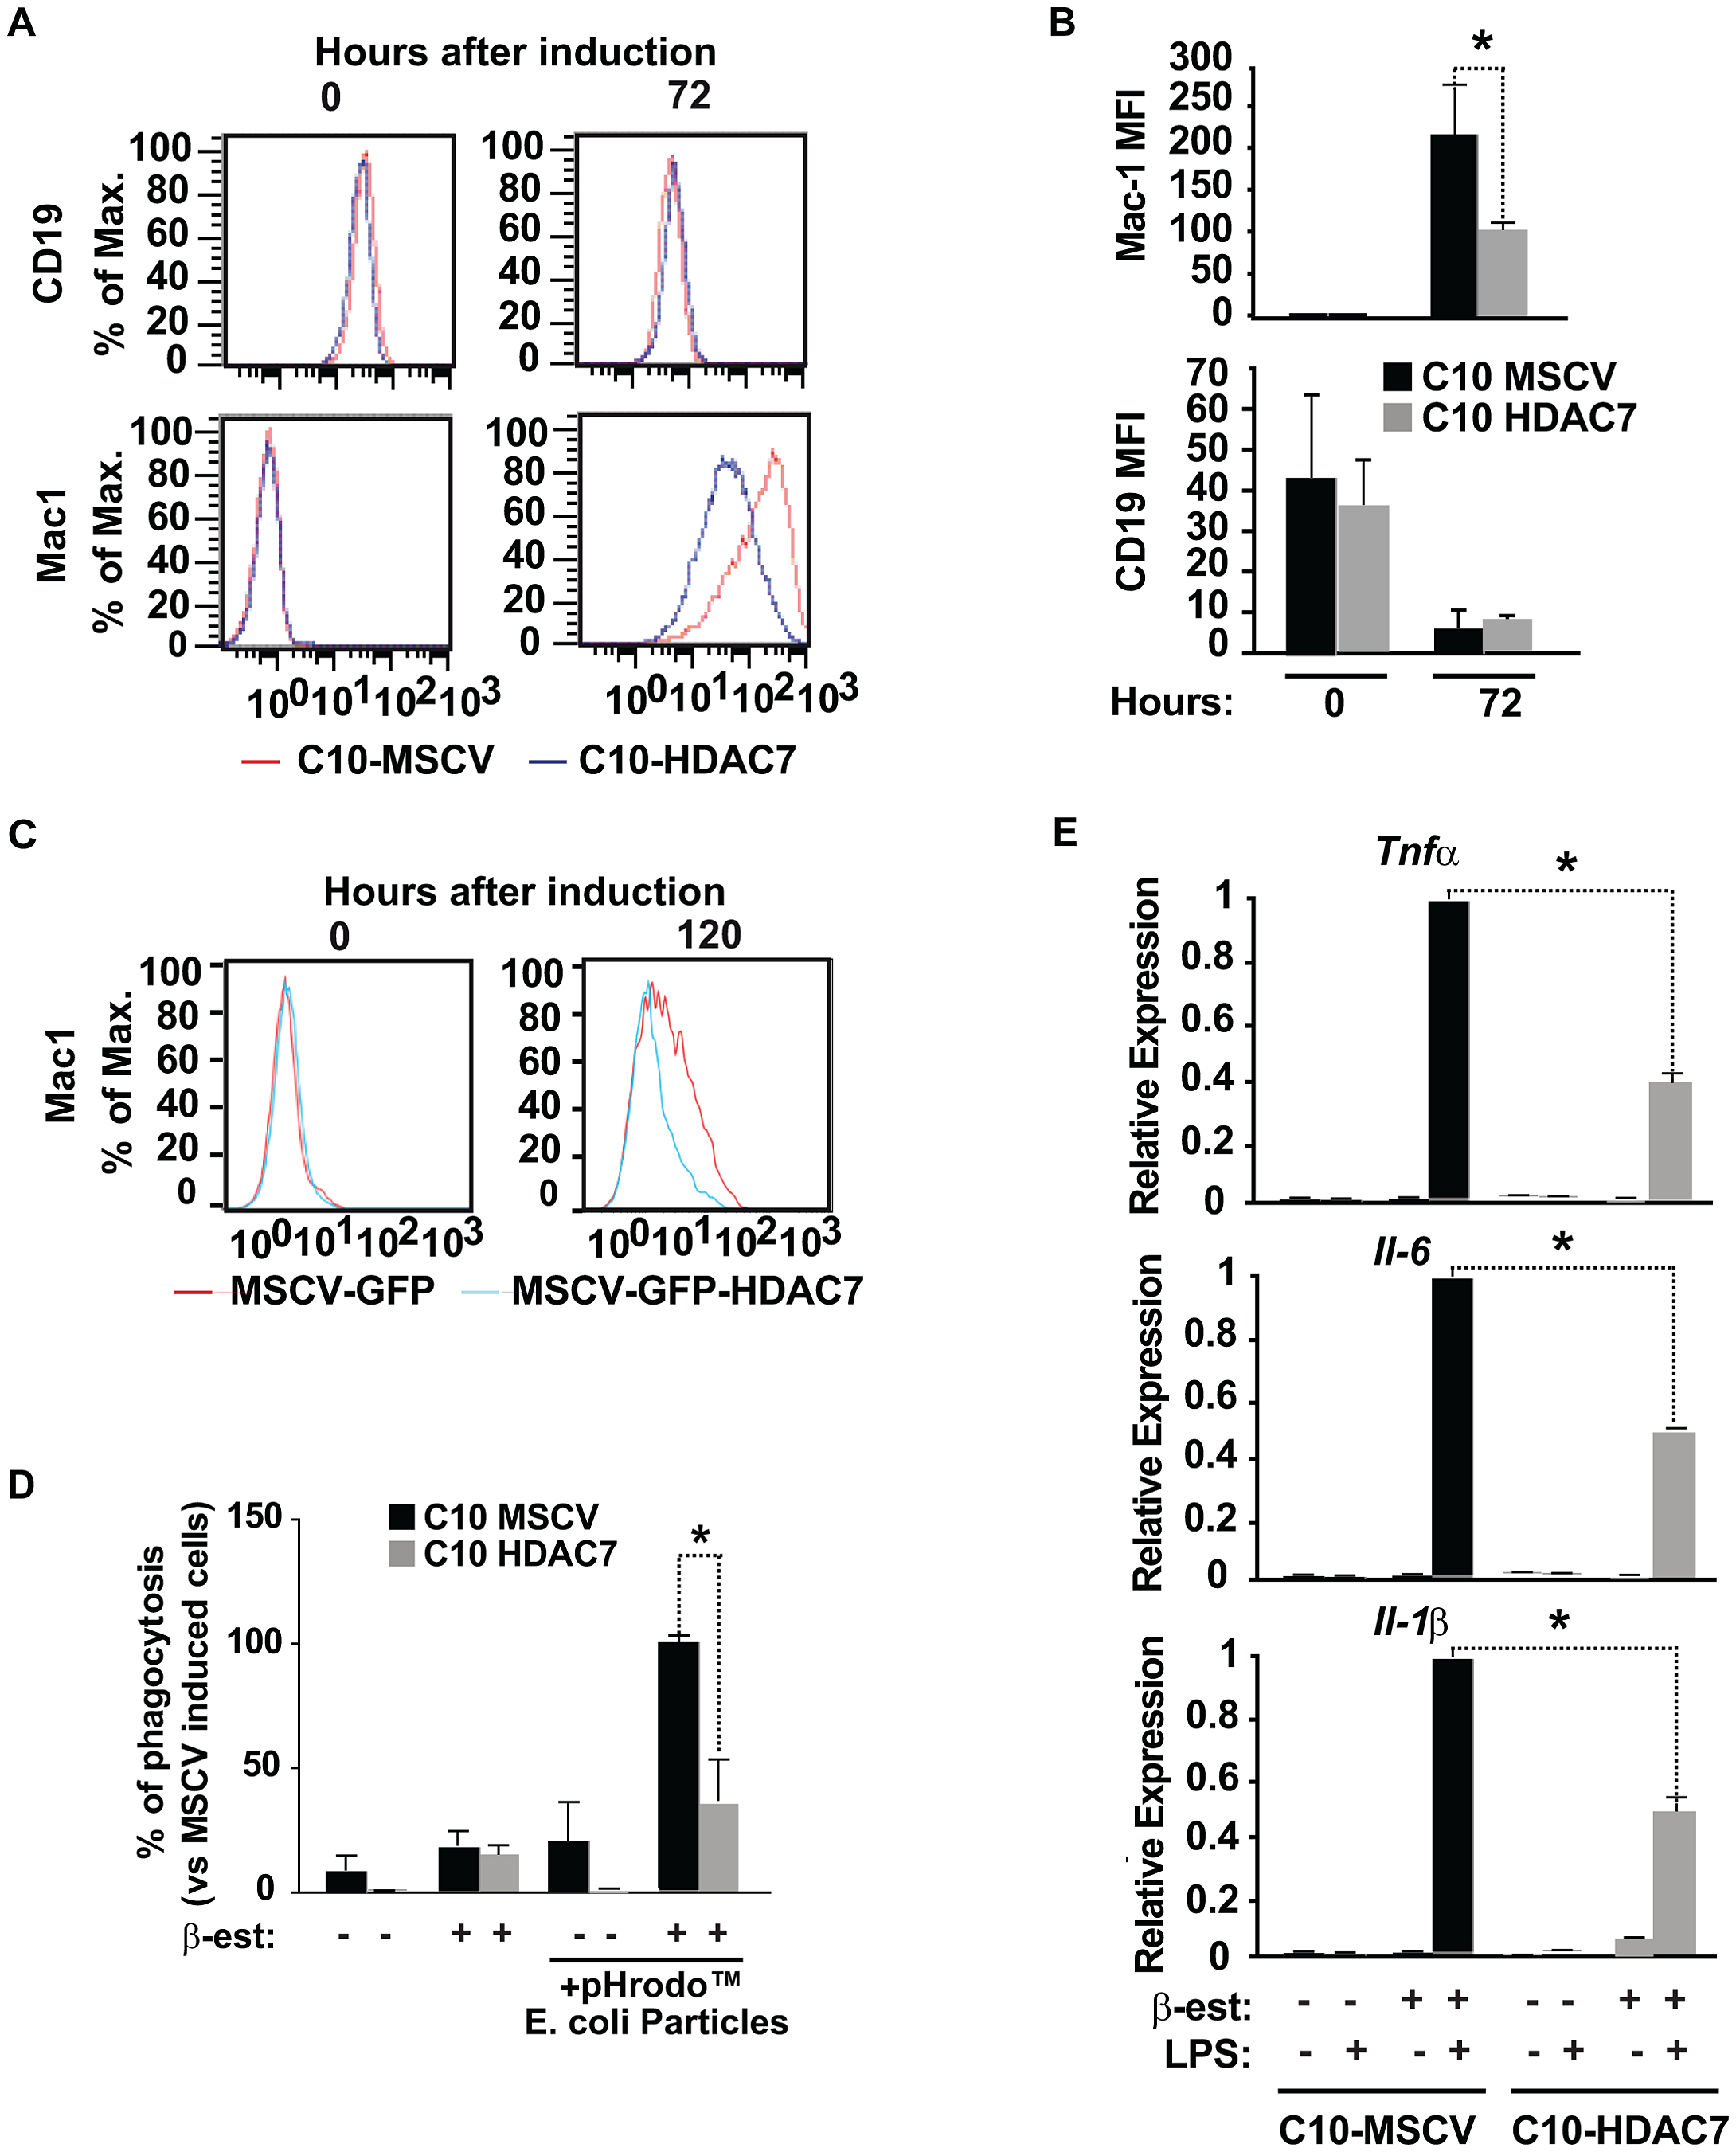 HDAC7 re-expression interferes with the functional properties of the converted macrophages.